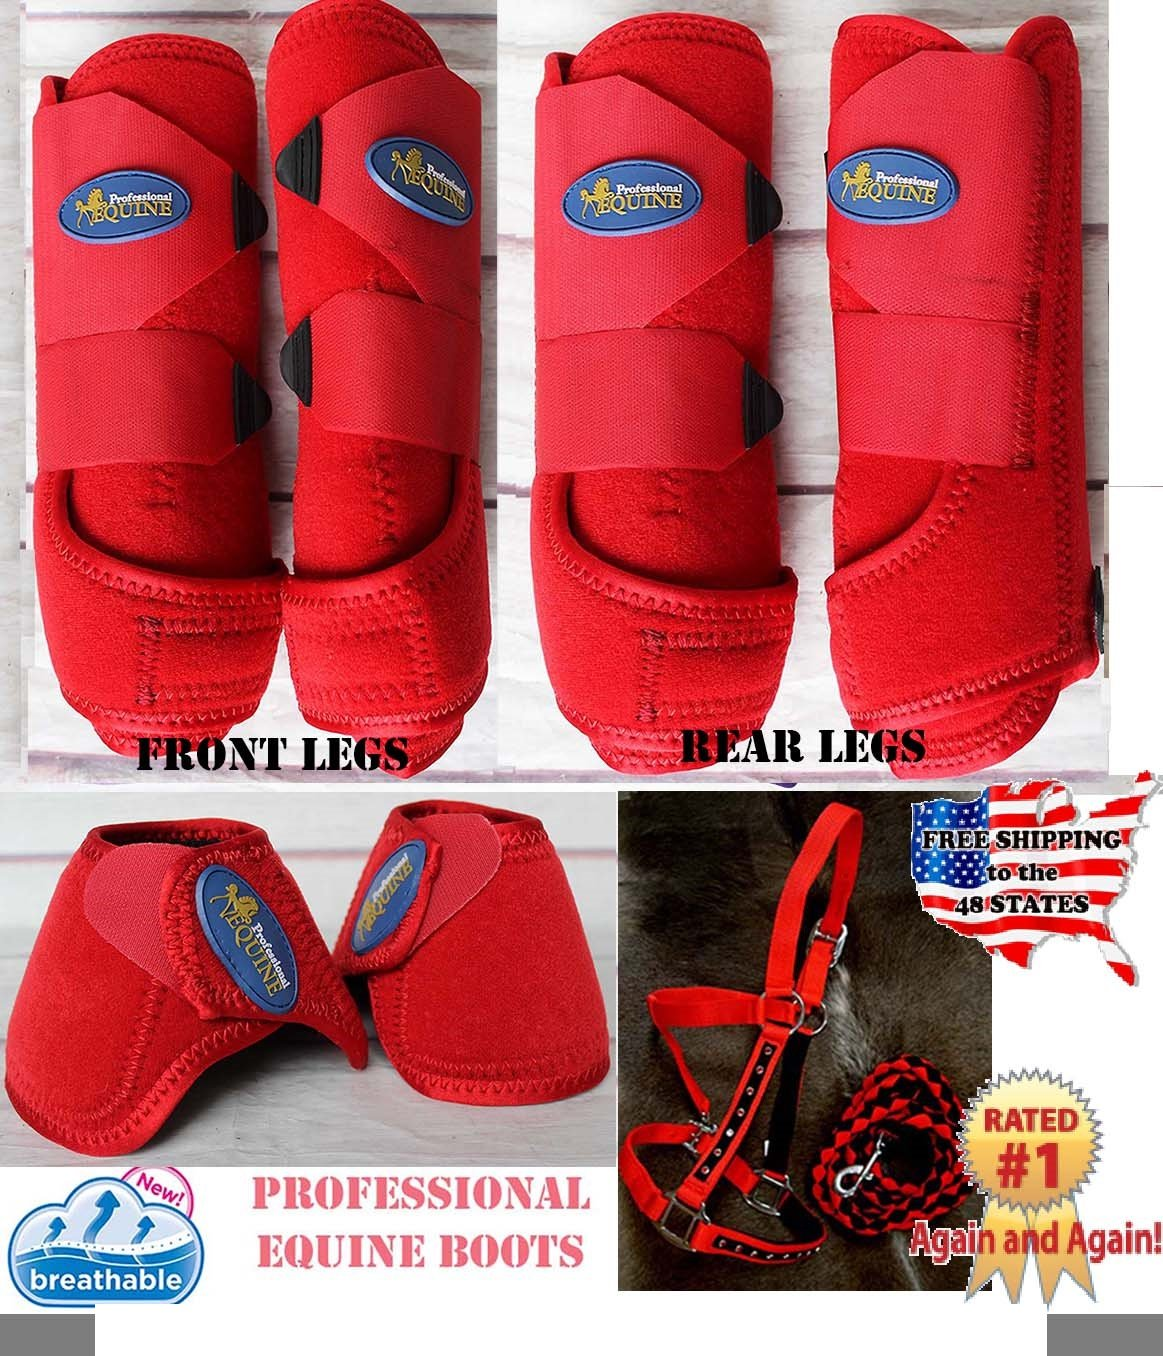 Horse Professional Equine Sports Medicine Splint Boots Bell Boot Tack Red 41RDA by Professional Equine (Image #1)